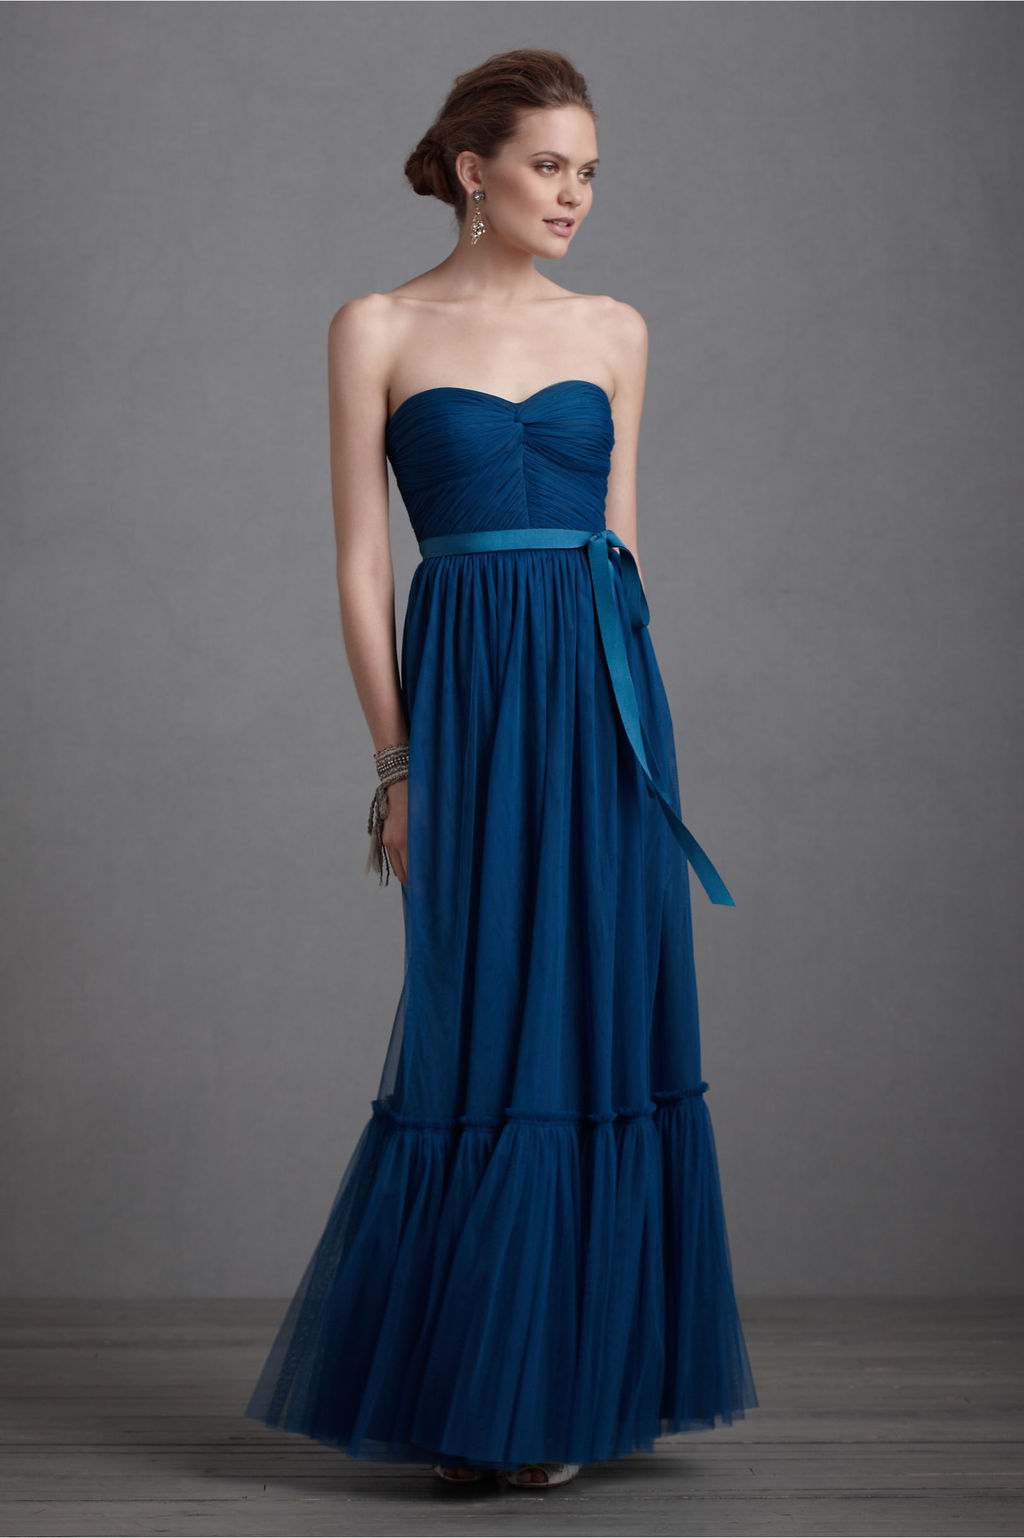 Bridesmaid Dresses Navy Blue